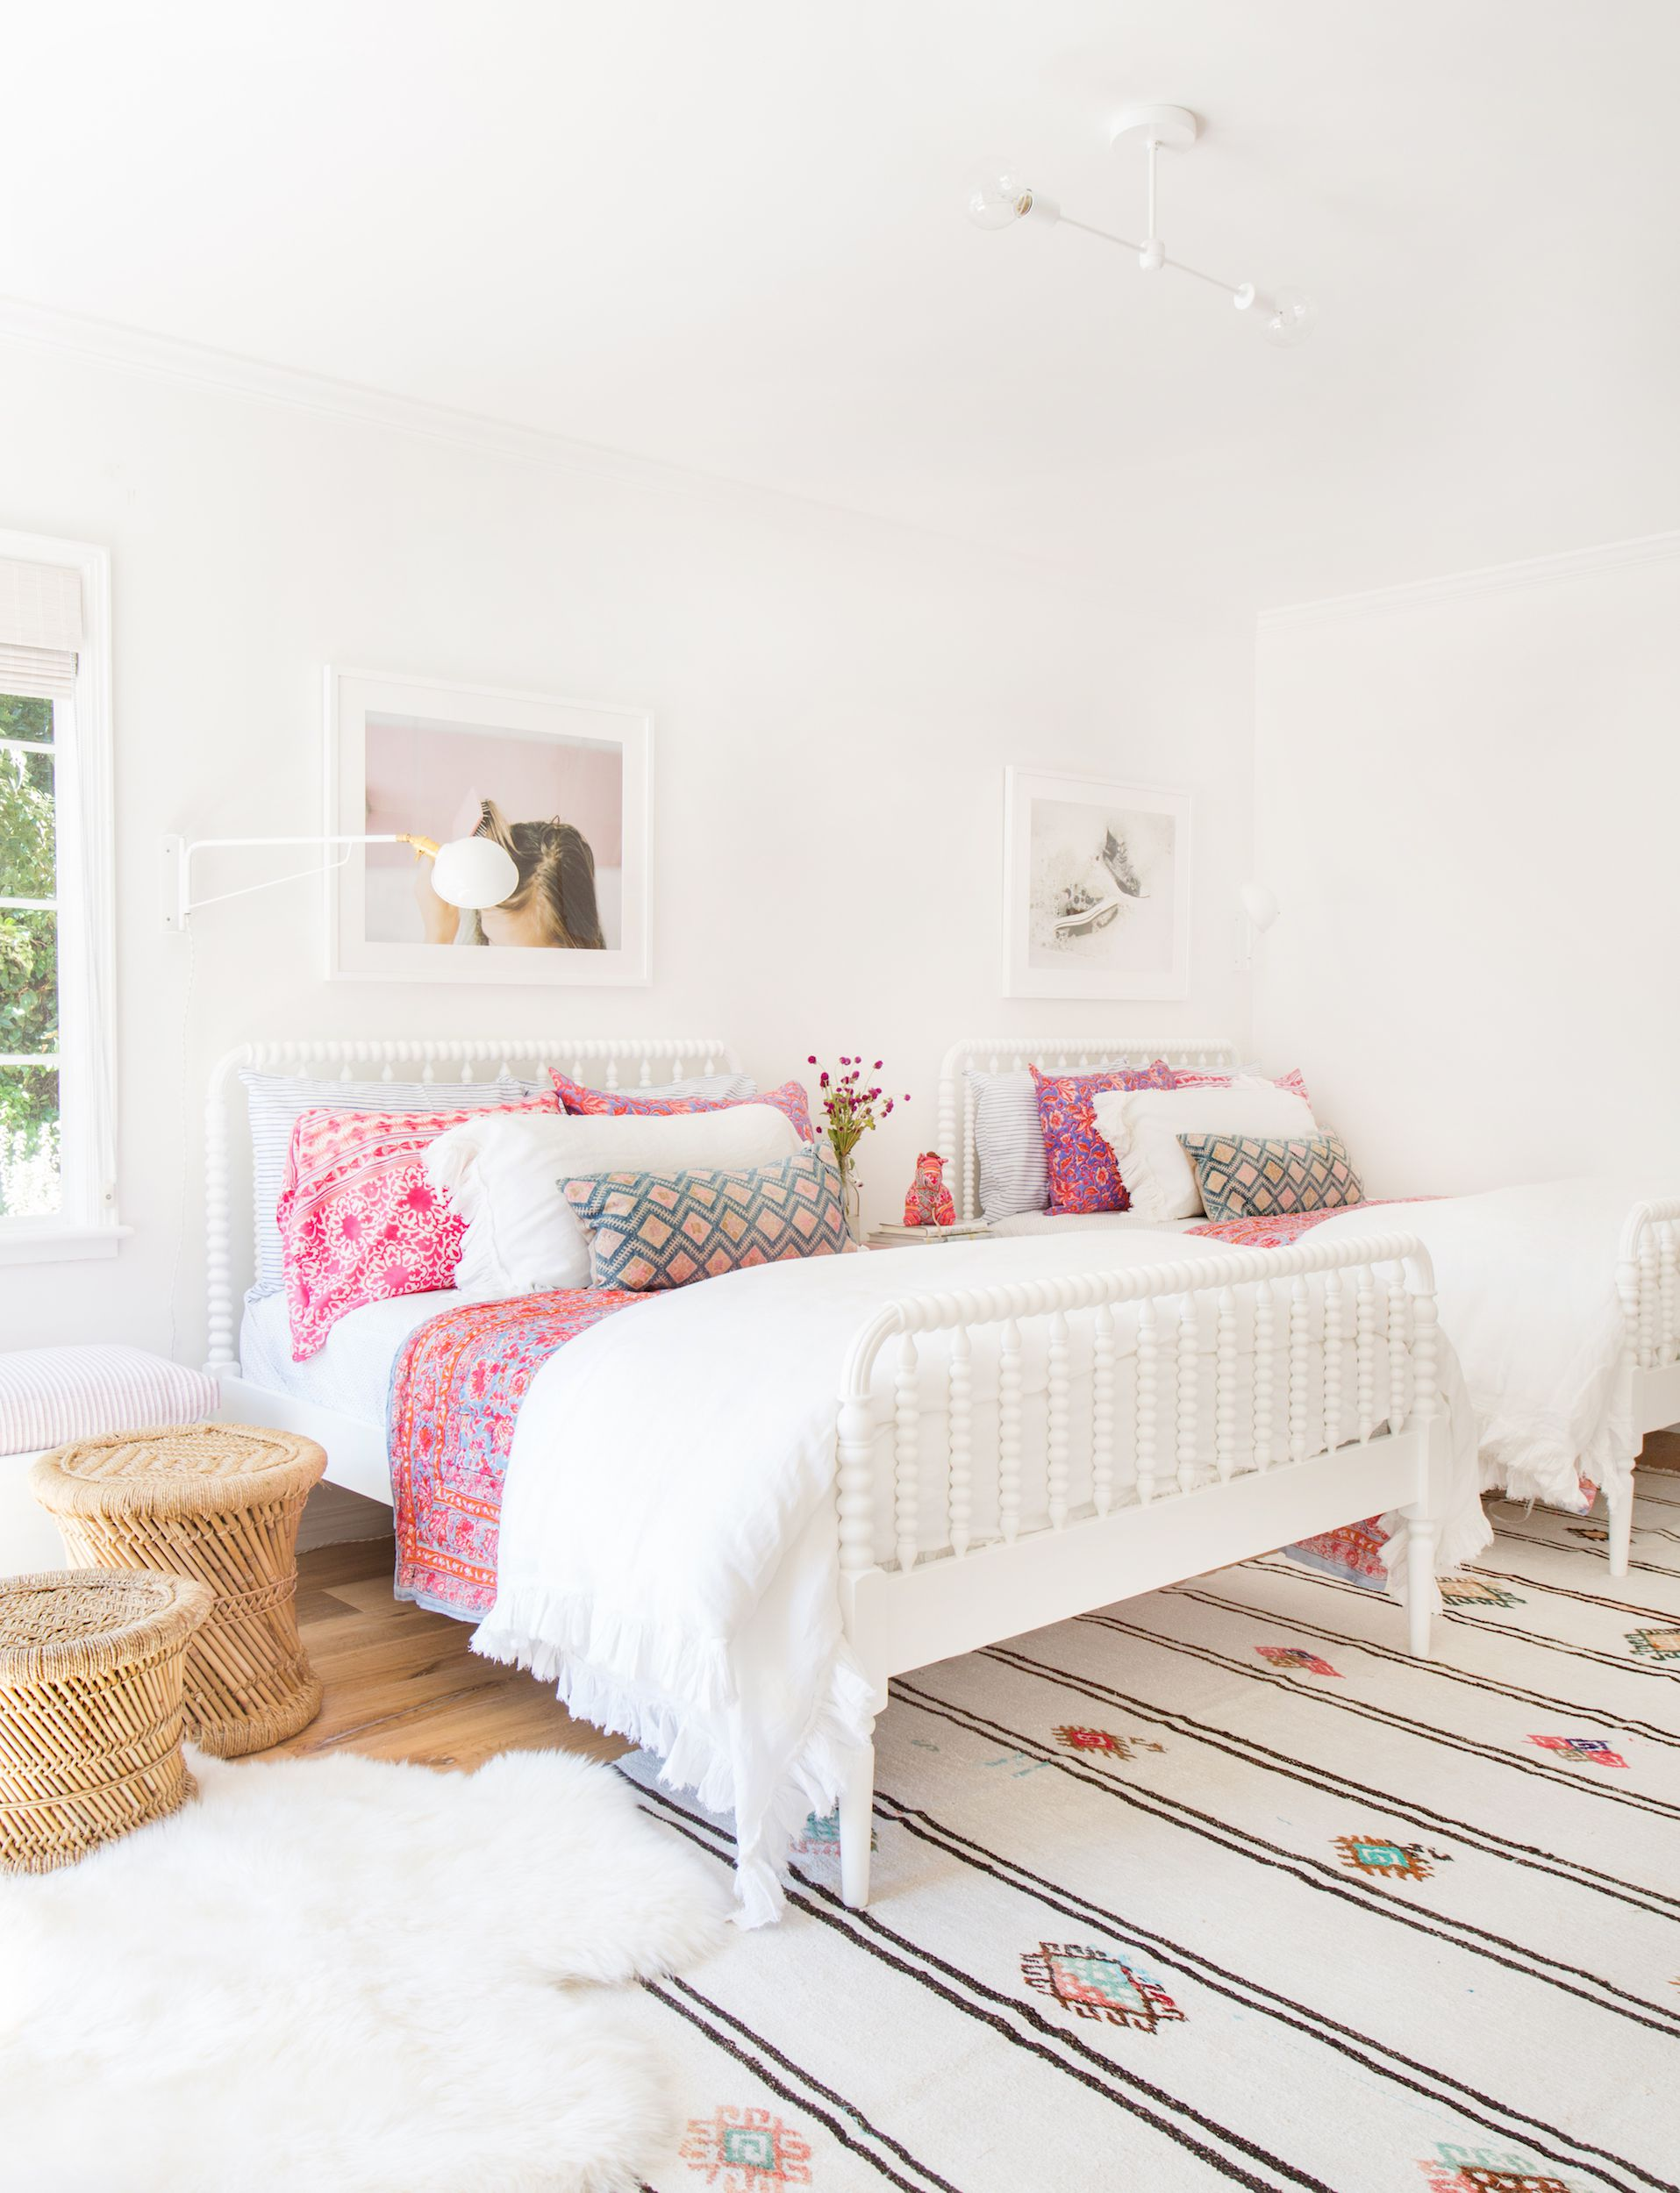 11 Best Teen Bedroom Ideas - Cool Teenage Room Decor for Girls and Boys